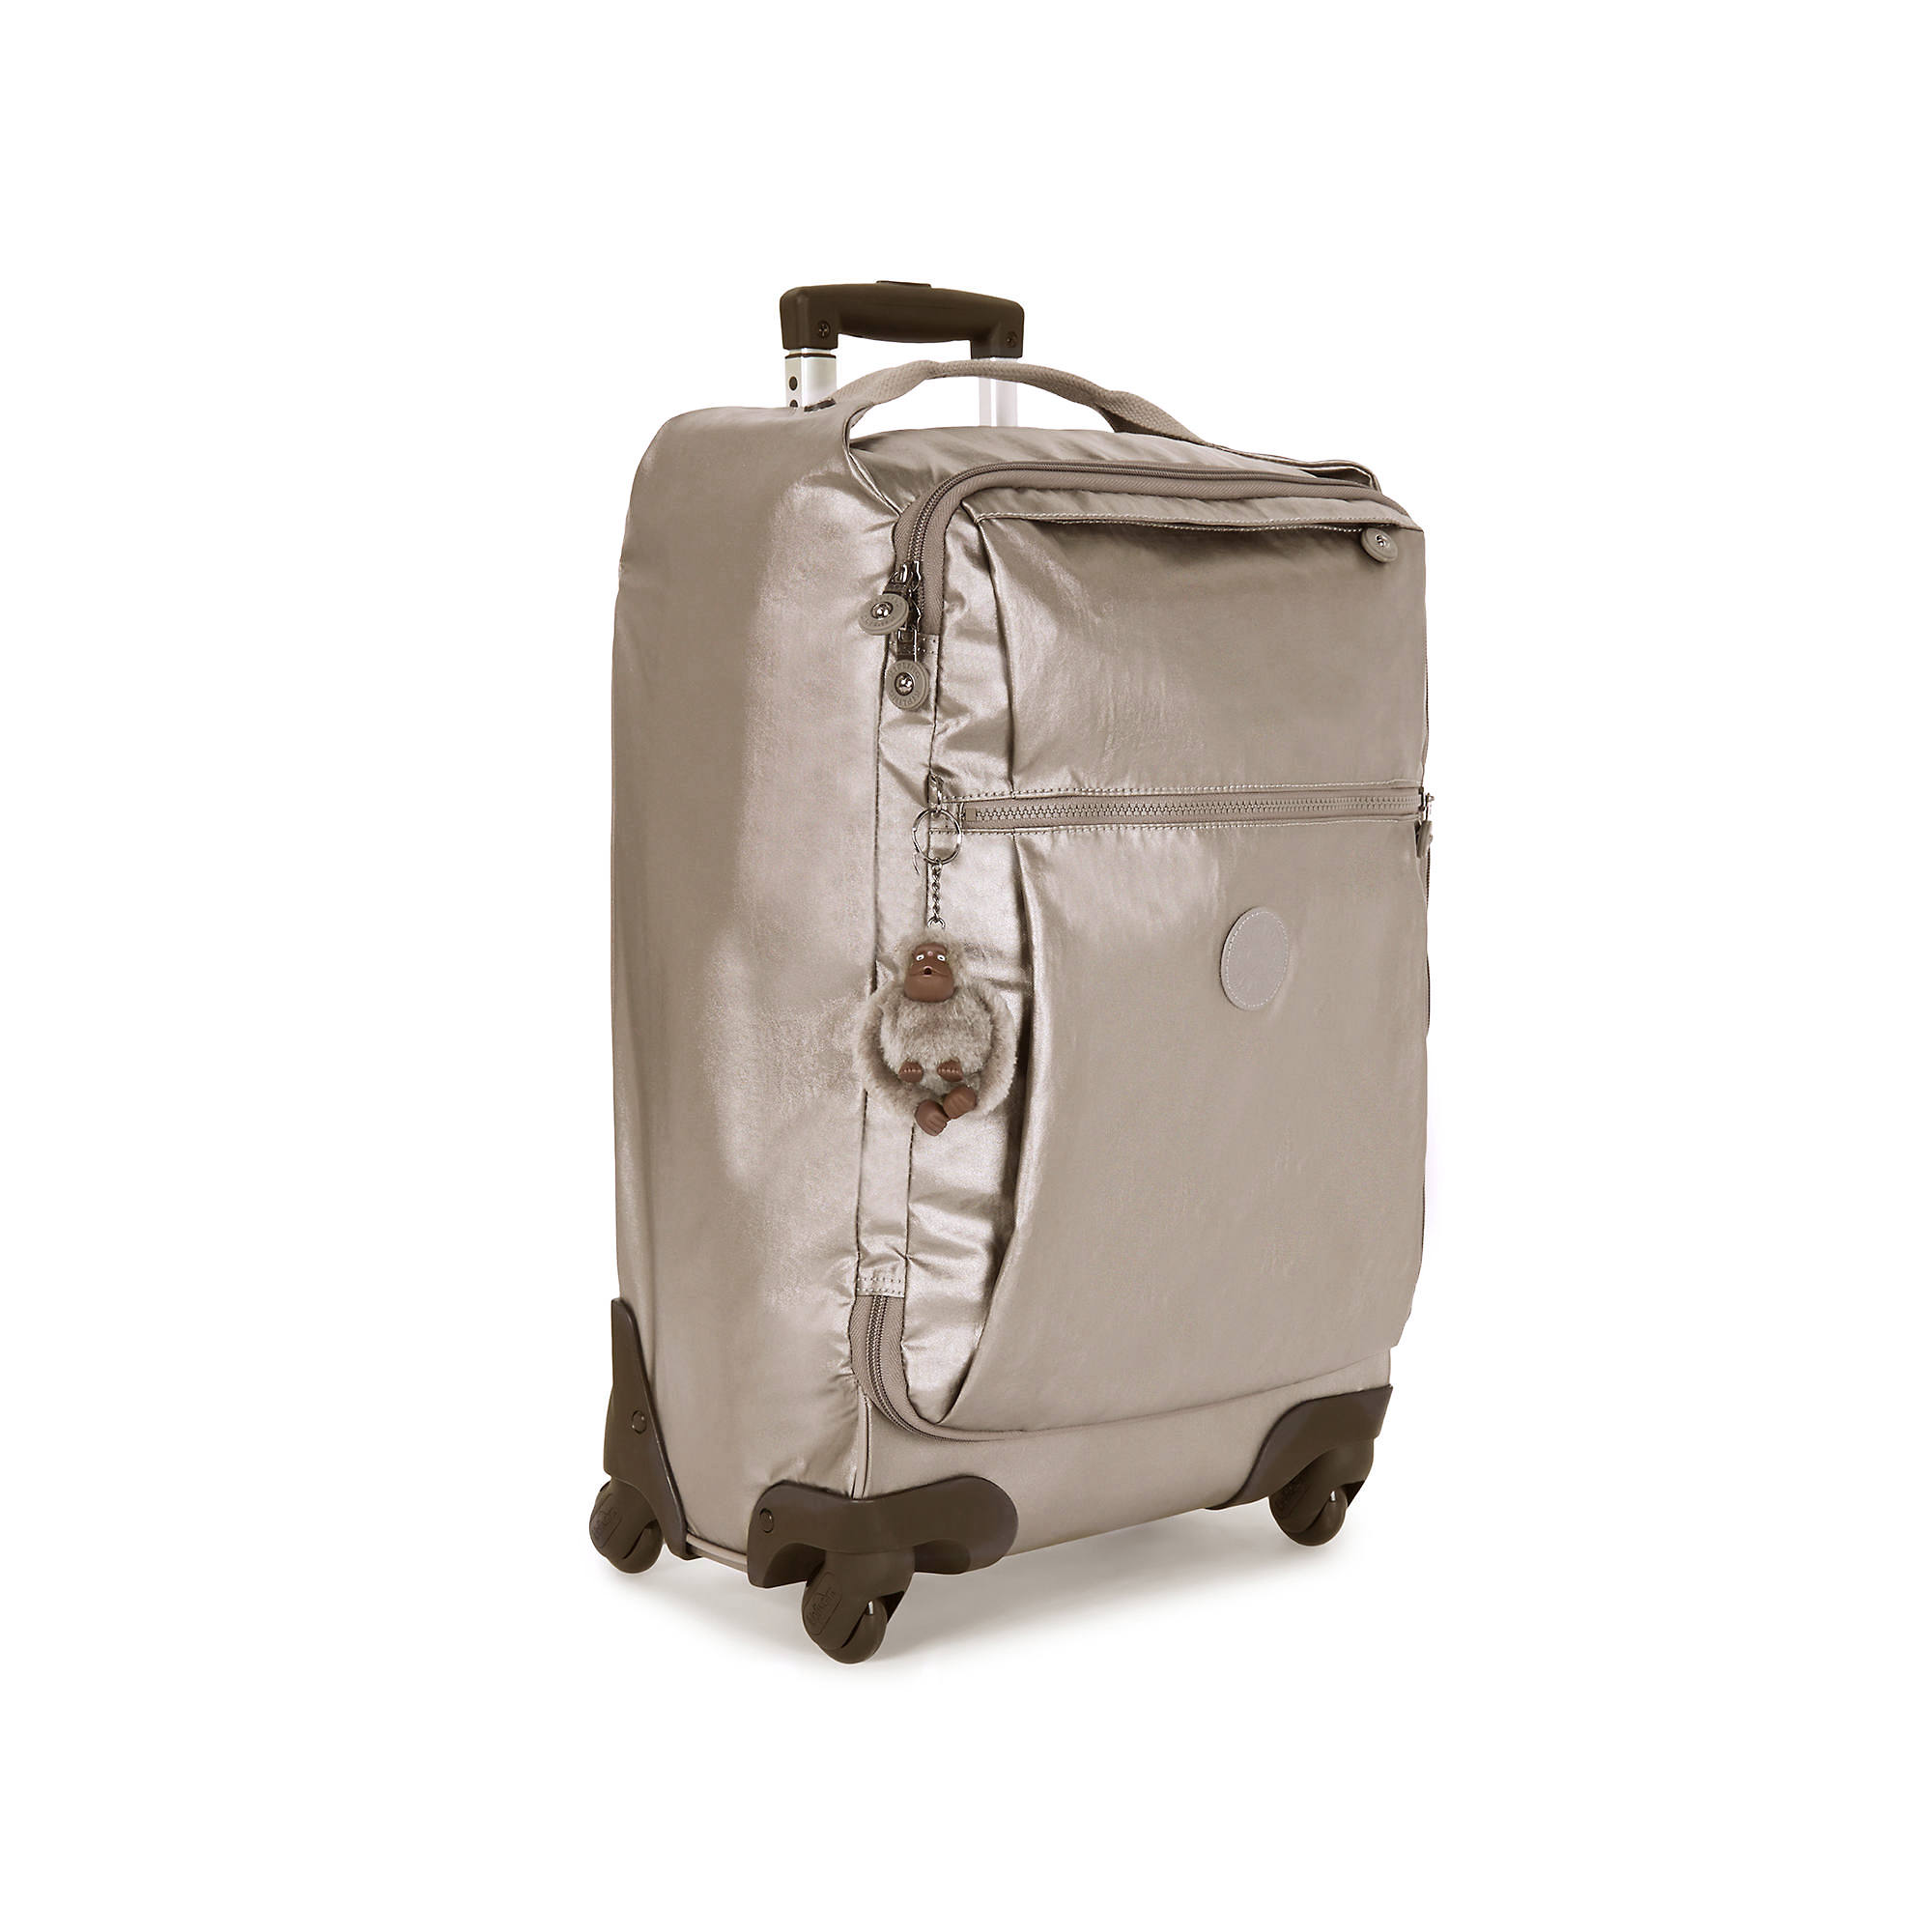 8b8870fe8 Kipling-Darcey-Small-Carry-On-Rolling-Luggage thumbnail 17